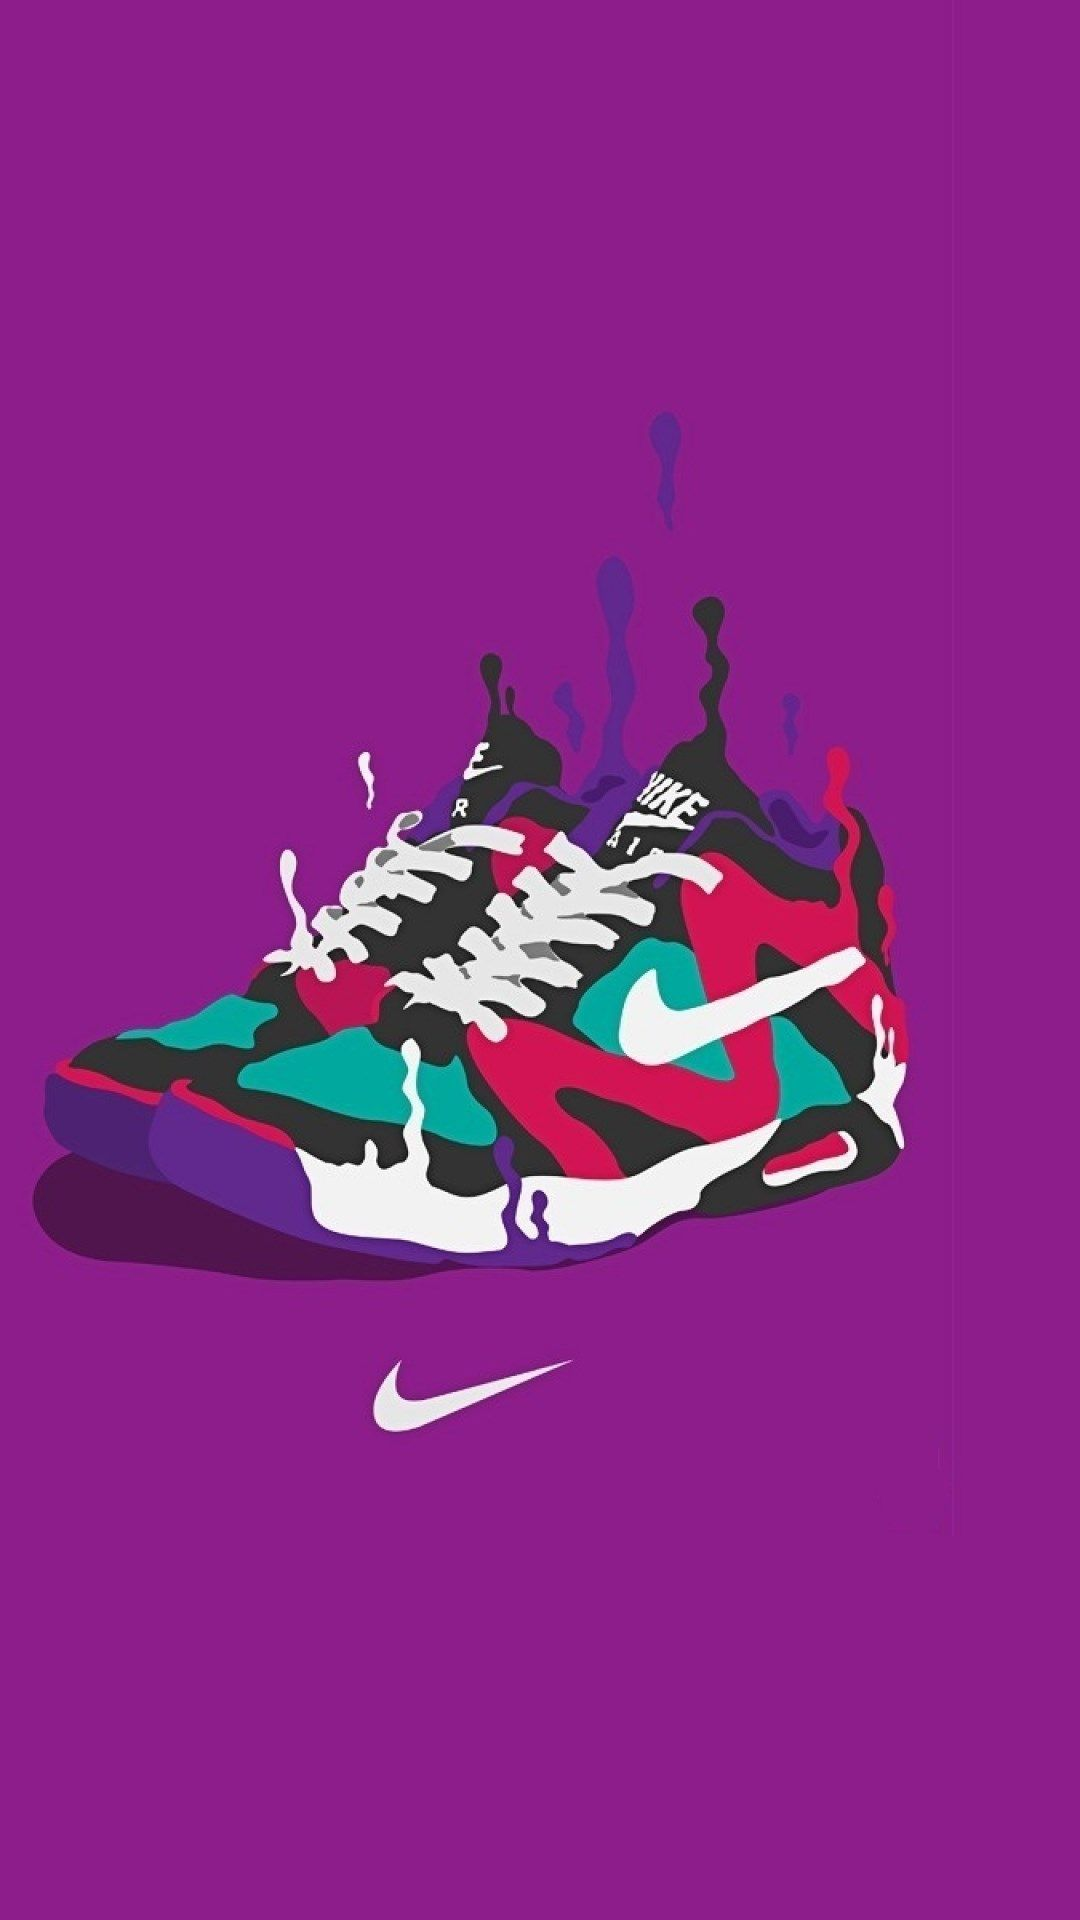 Nike Air Wallpapers , Top Free Nike Air Backgrounds